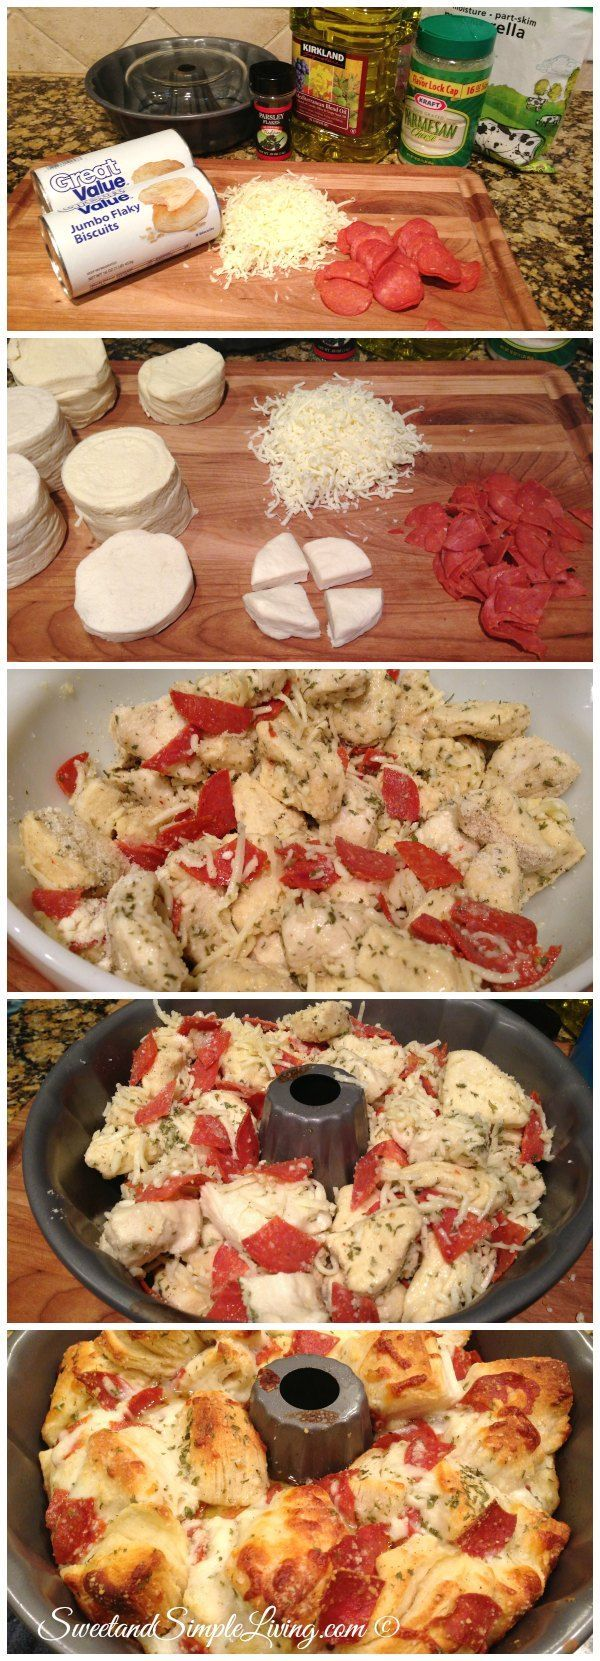 Pull Apart Pizza Bread. Like making monkey bread but with pizza ingredients.